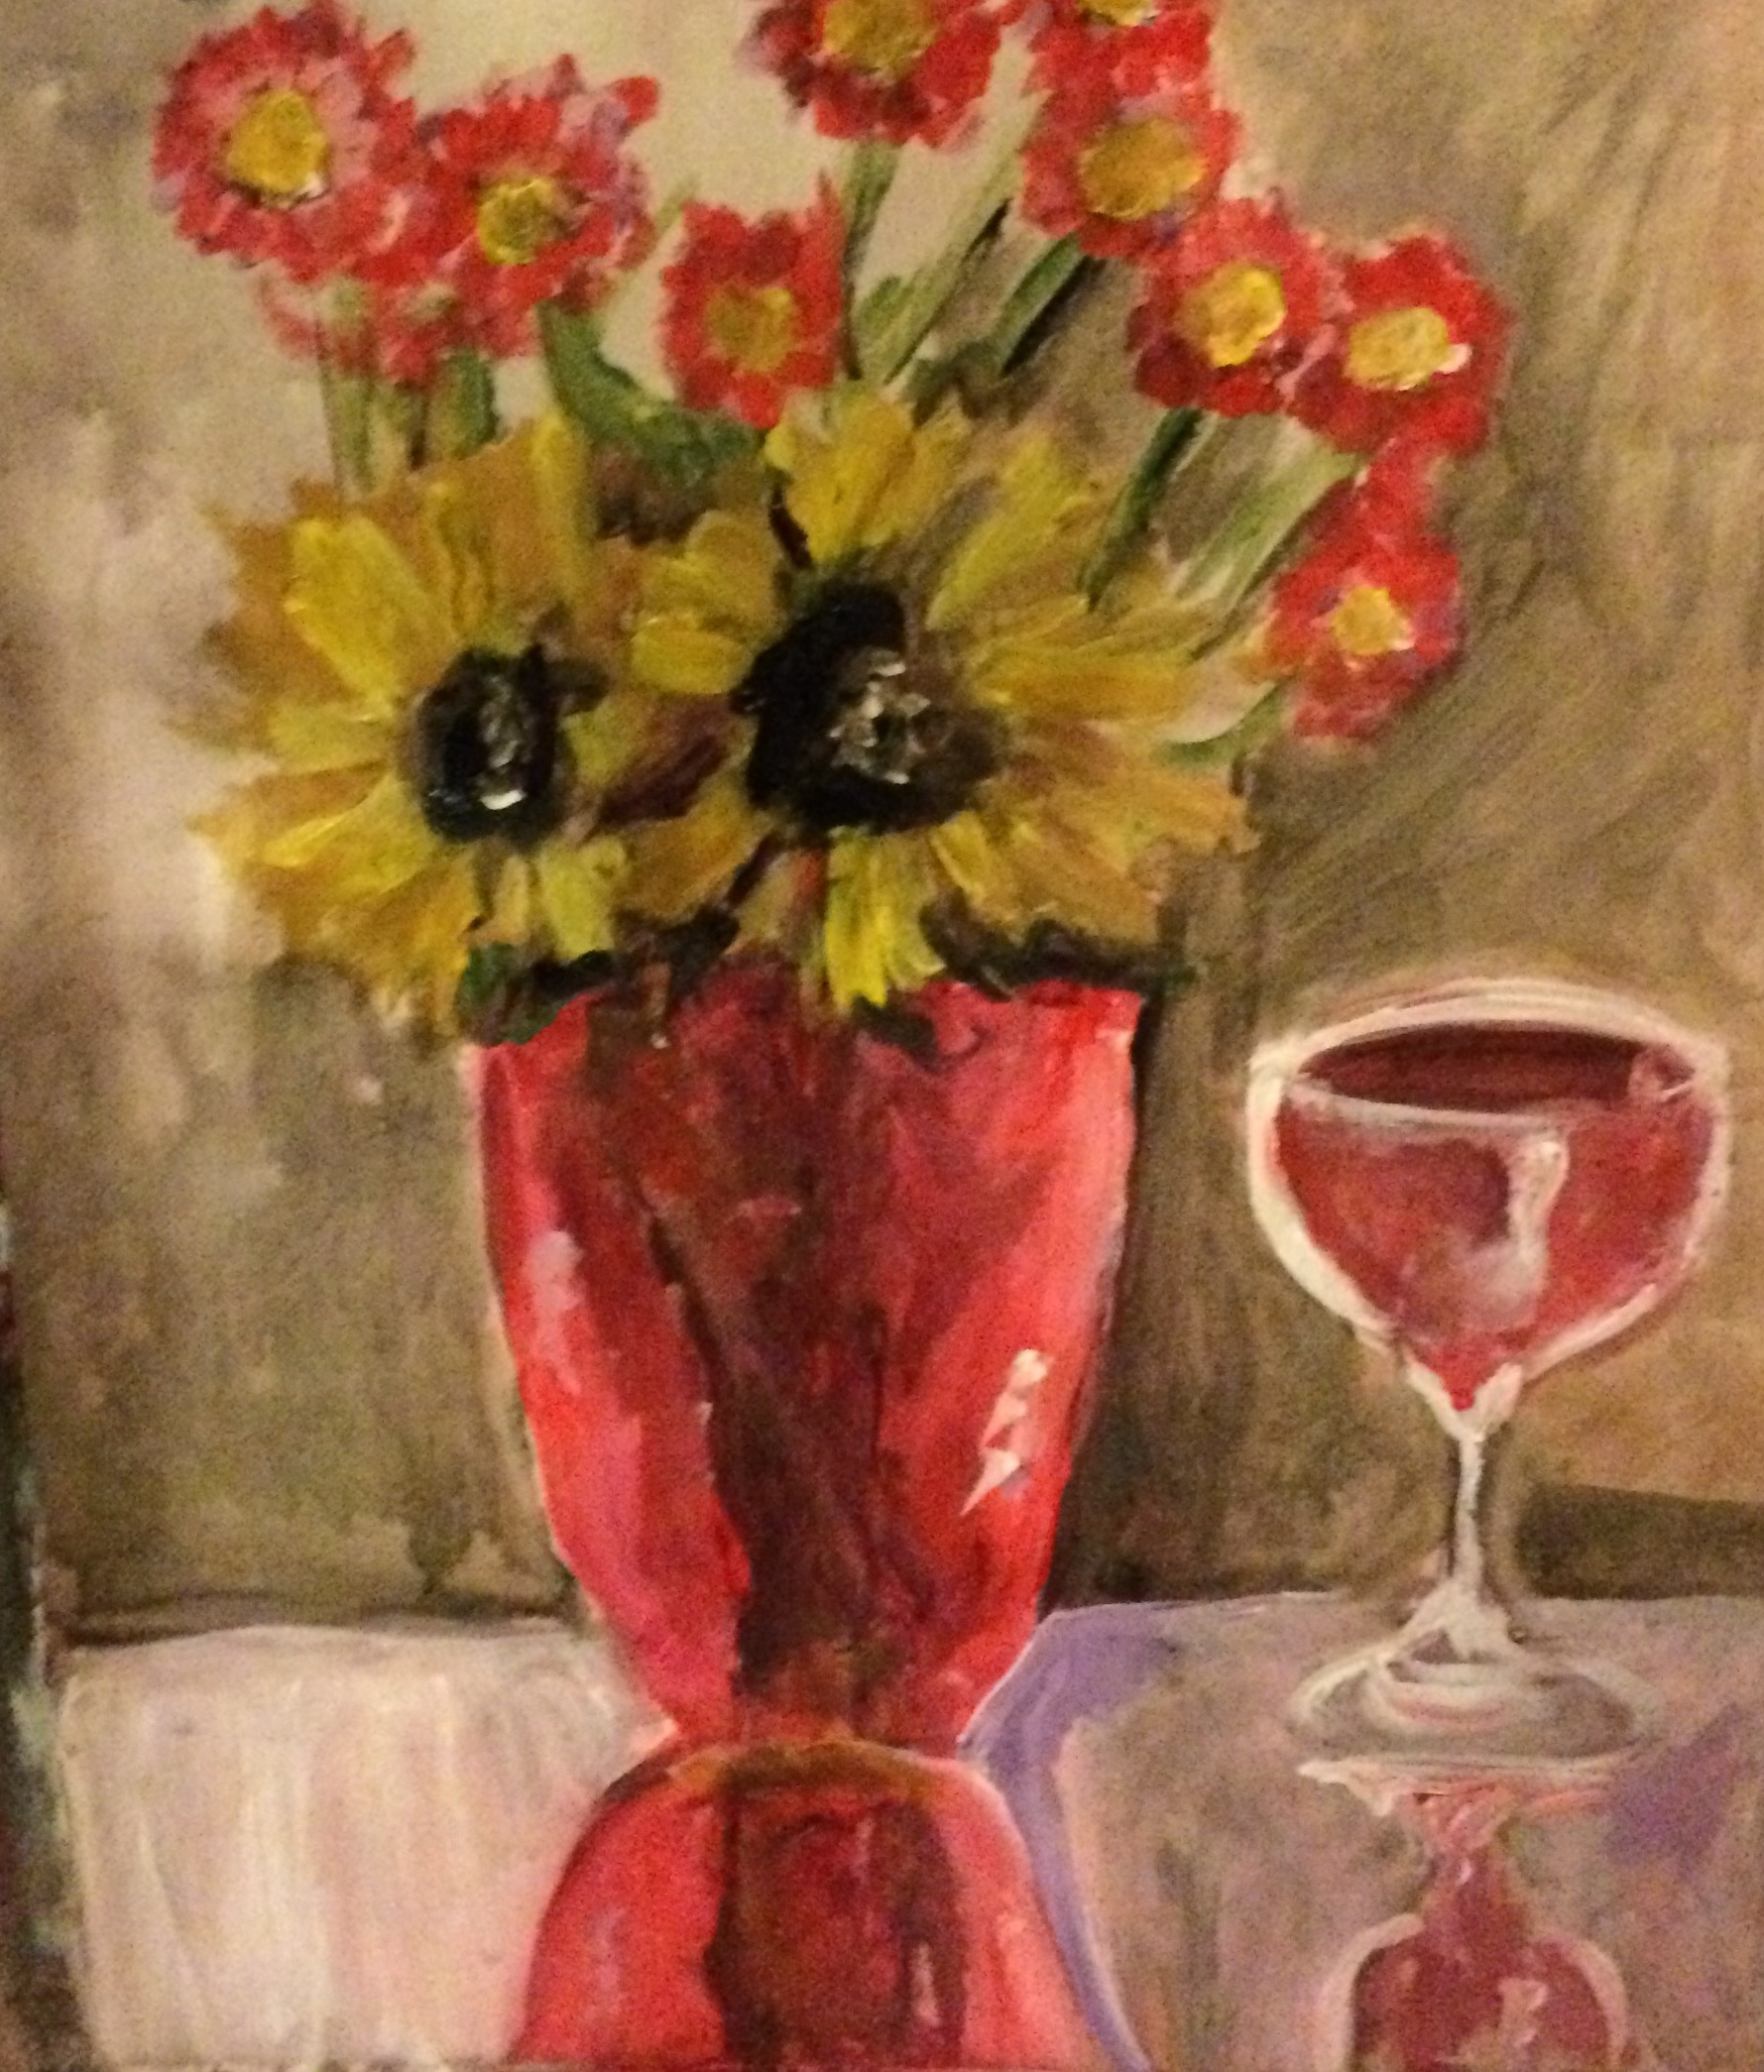 Picasso's flowers Wessel style